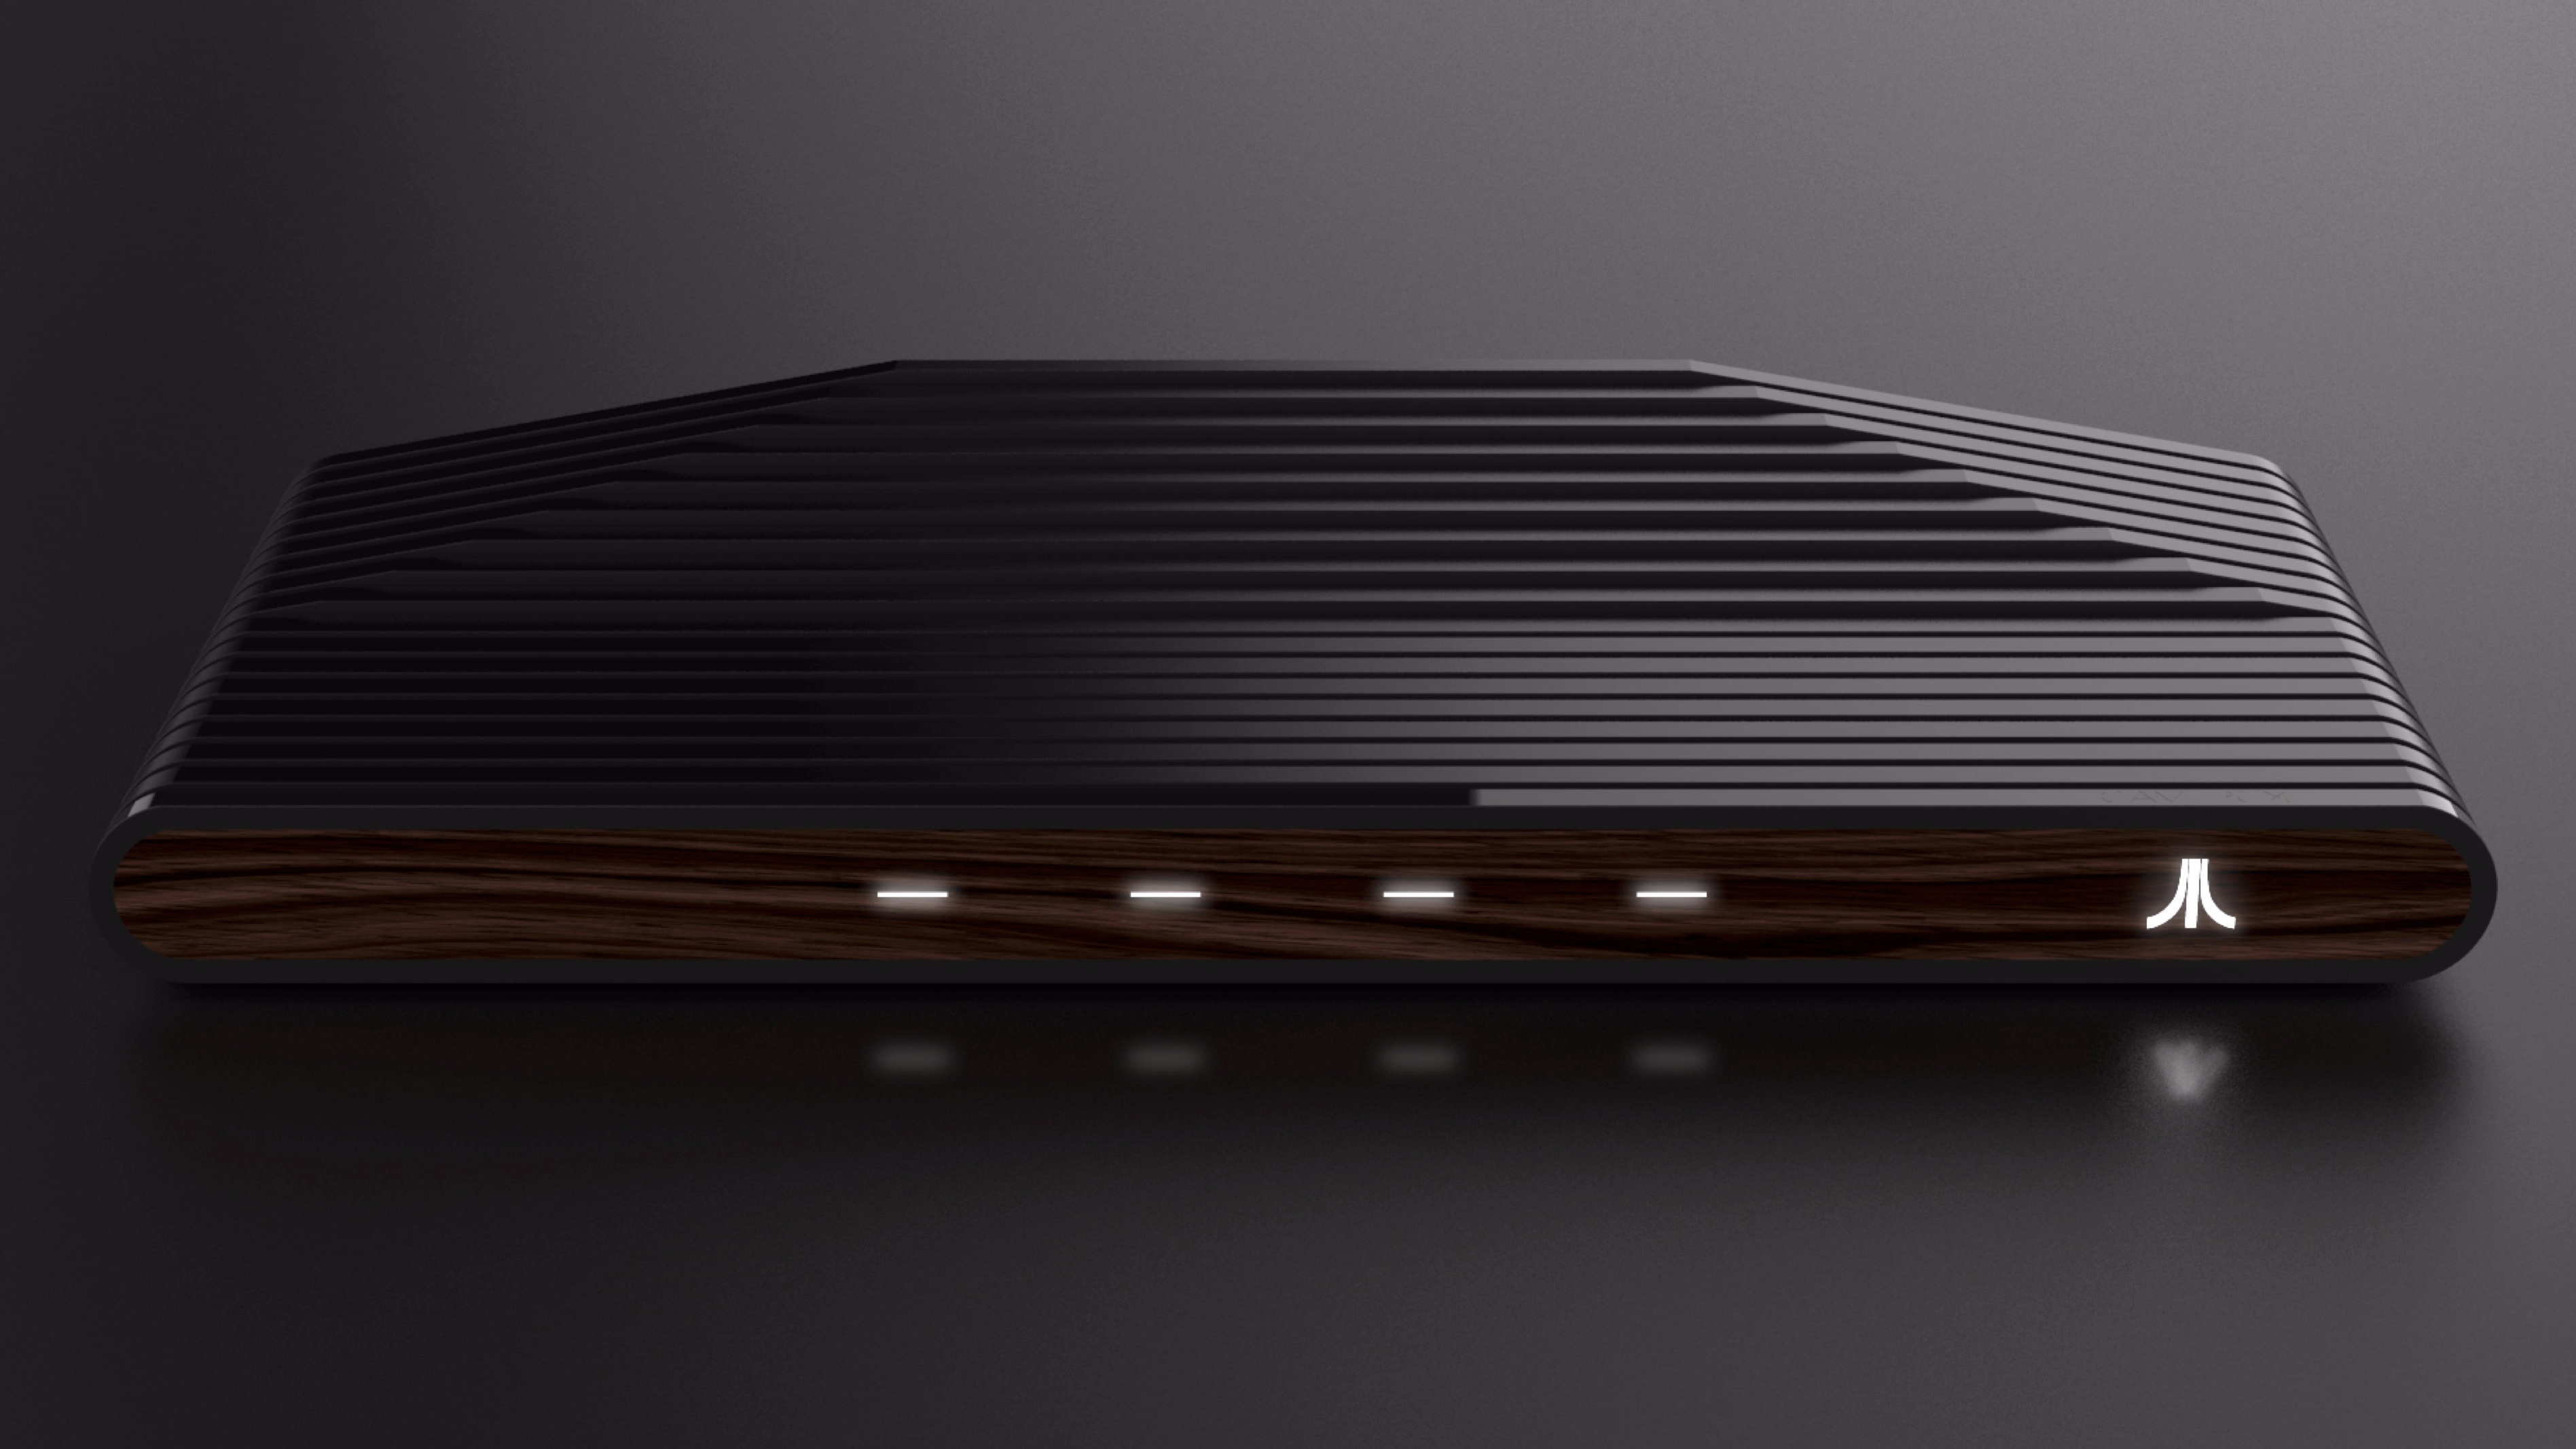 Atari Has Revealed Details And Images Of Its First Console In 20 Years